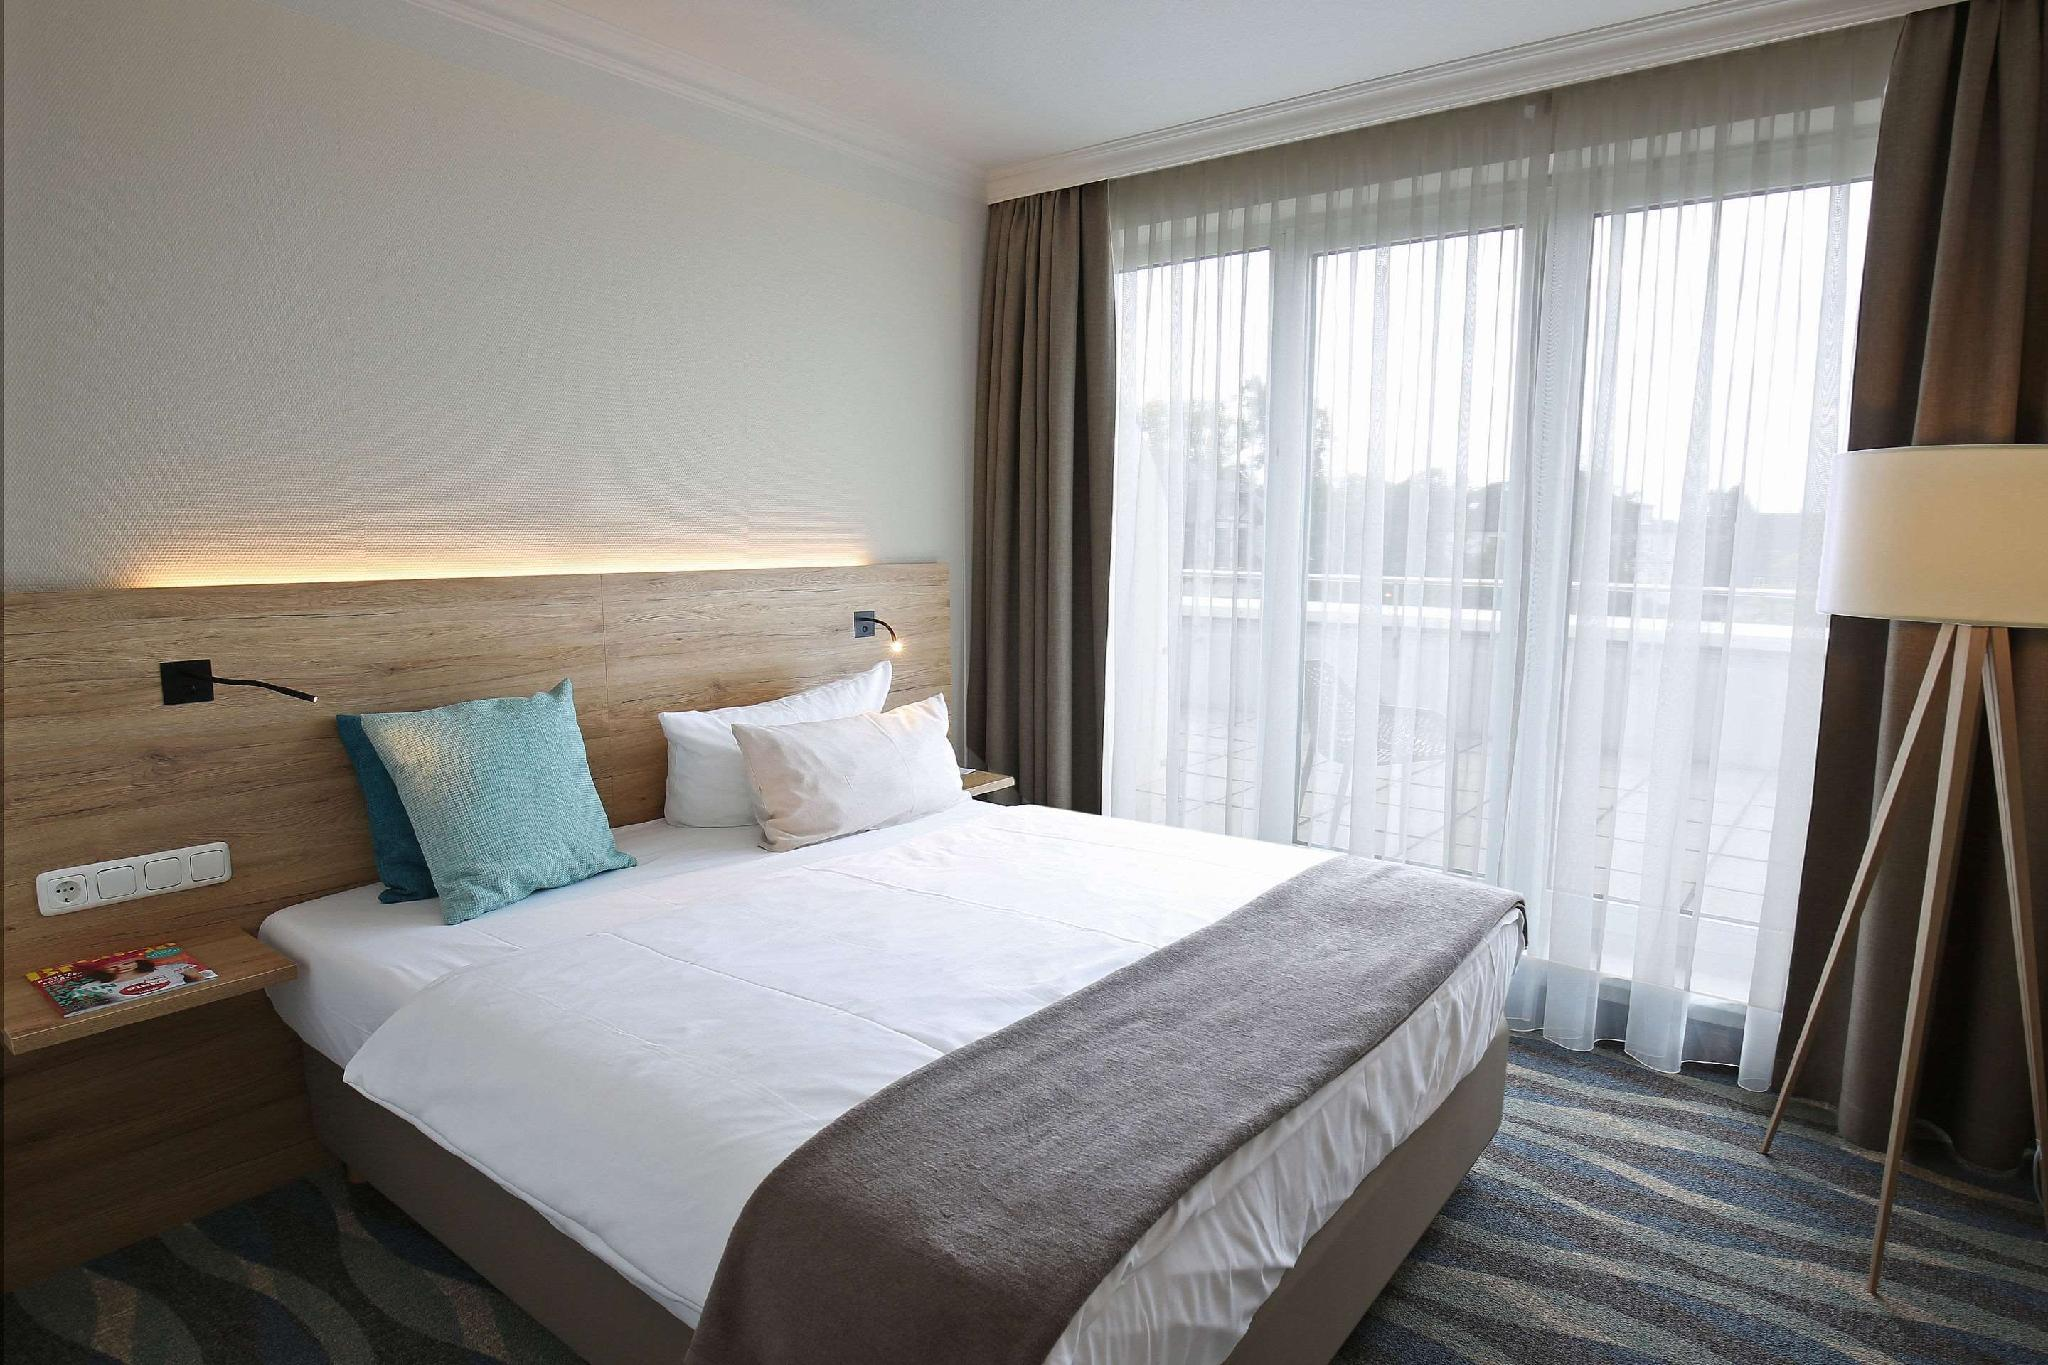 Quality Hotel Lippstadt, Soest